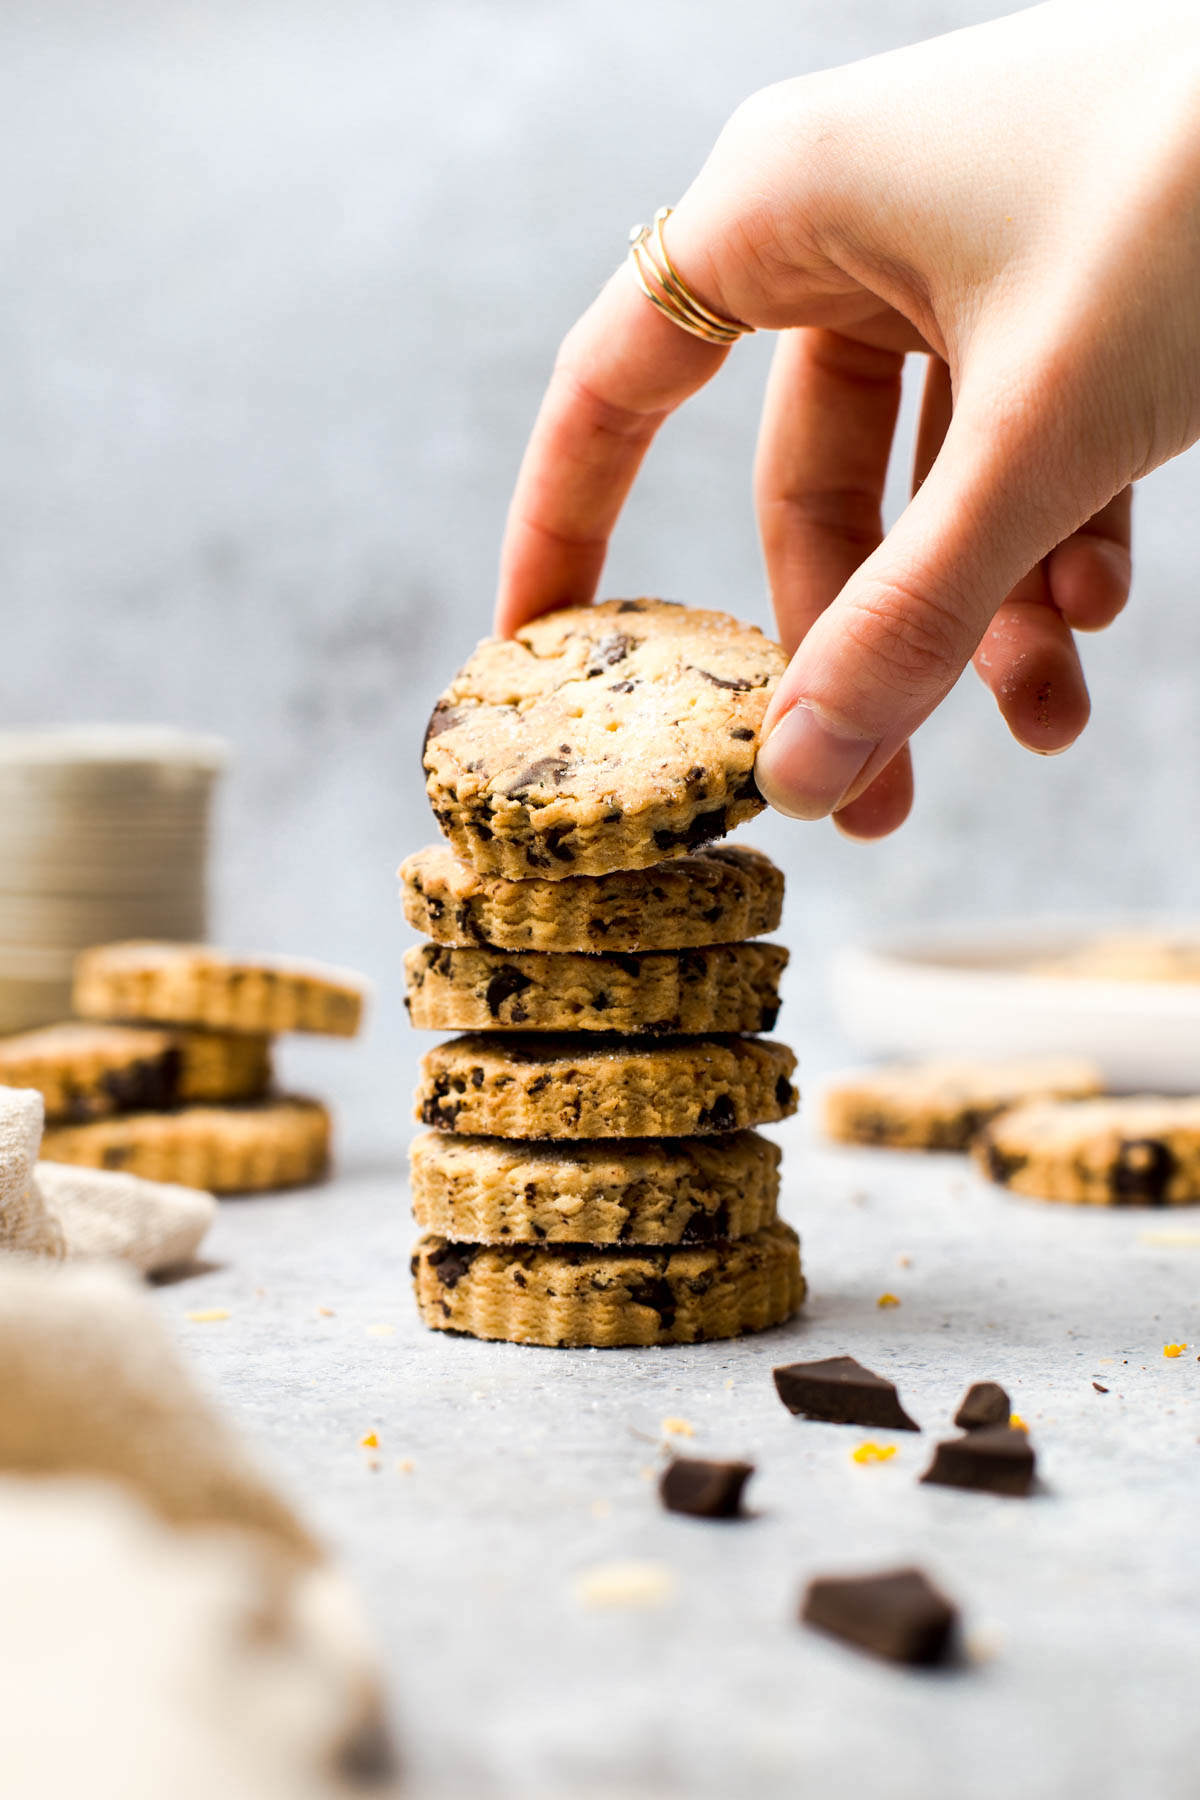 A hand reaching out for a stack of shortbread biscuits.